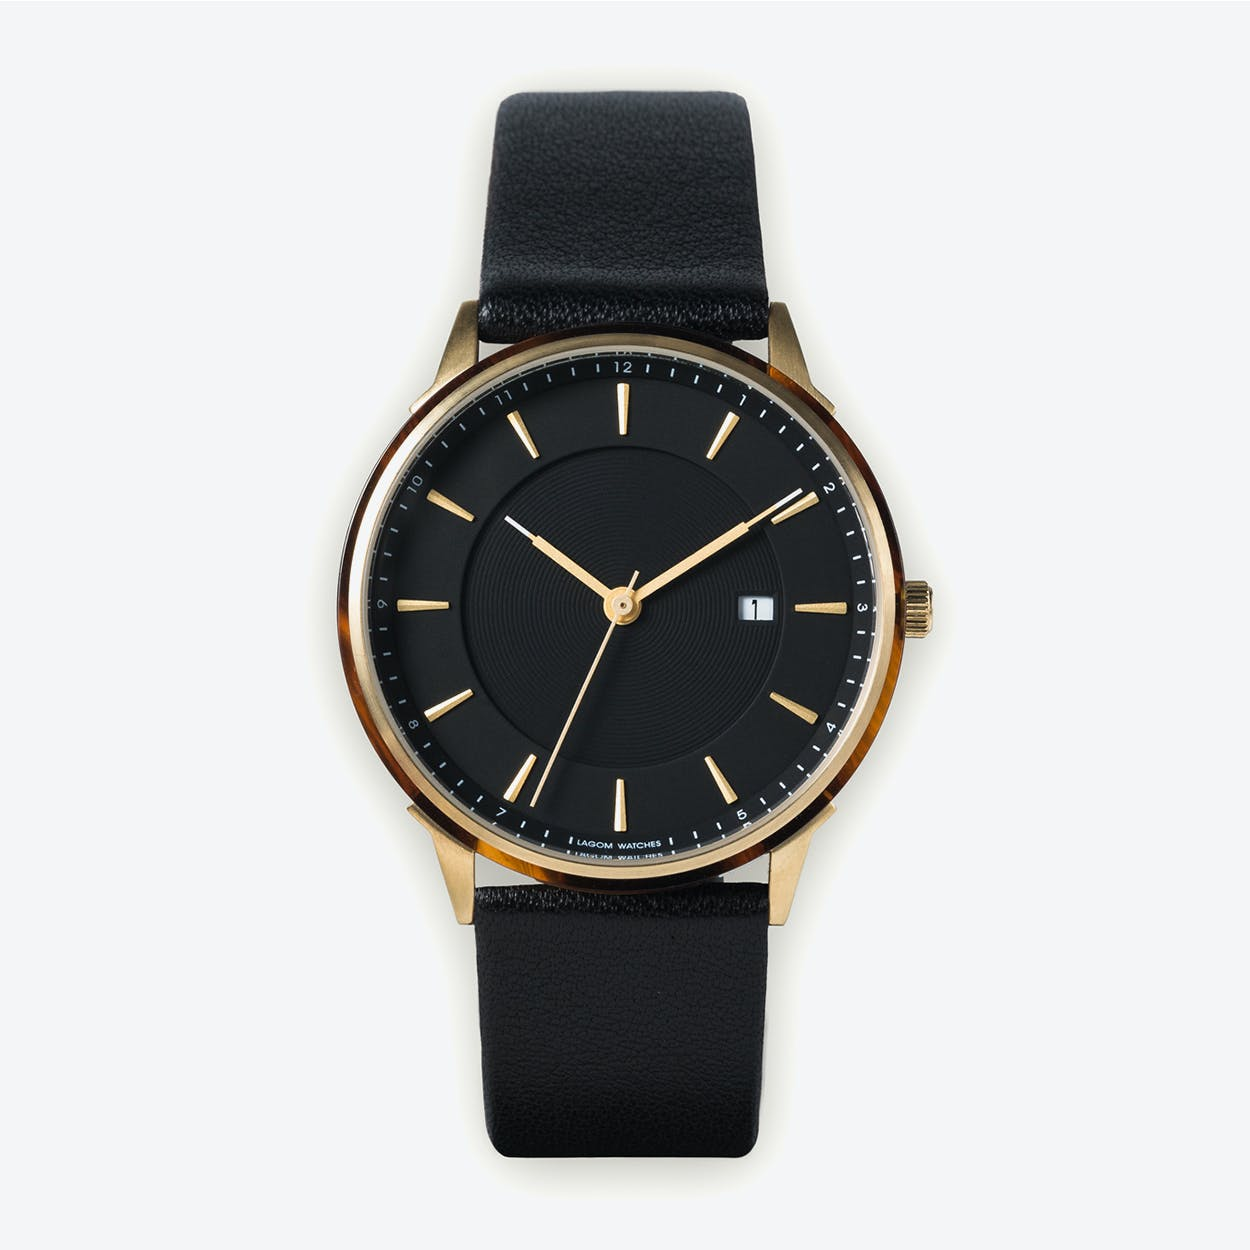 BÖRJA - Gold Watch in Black Face and Black Leather Strap